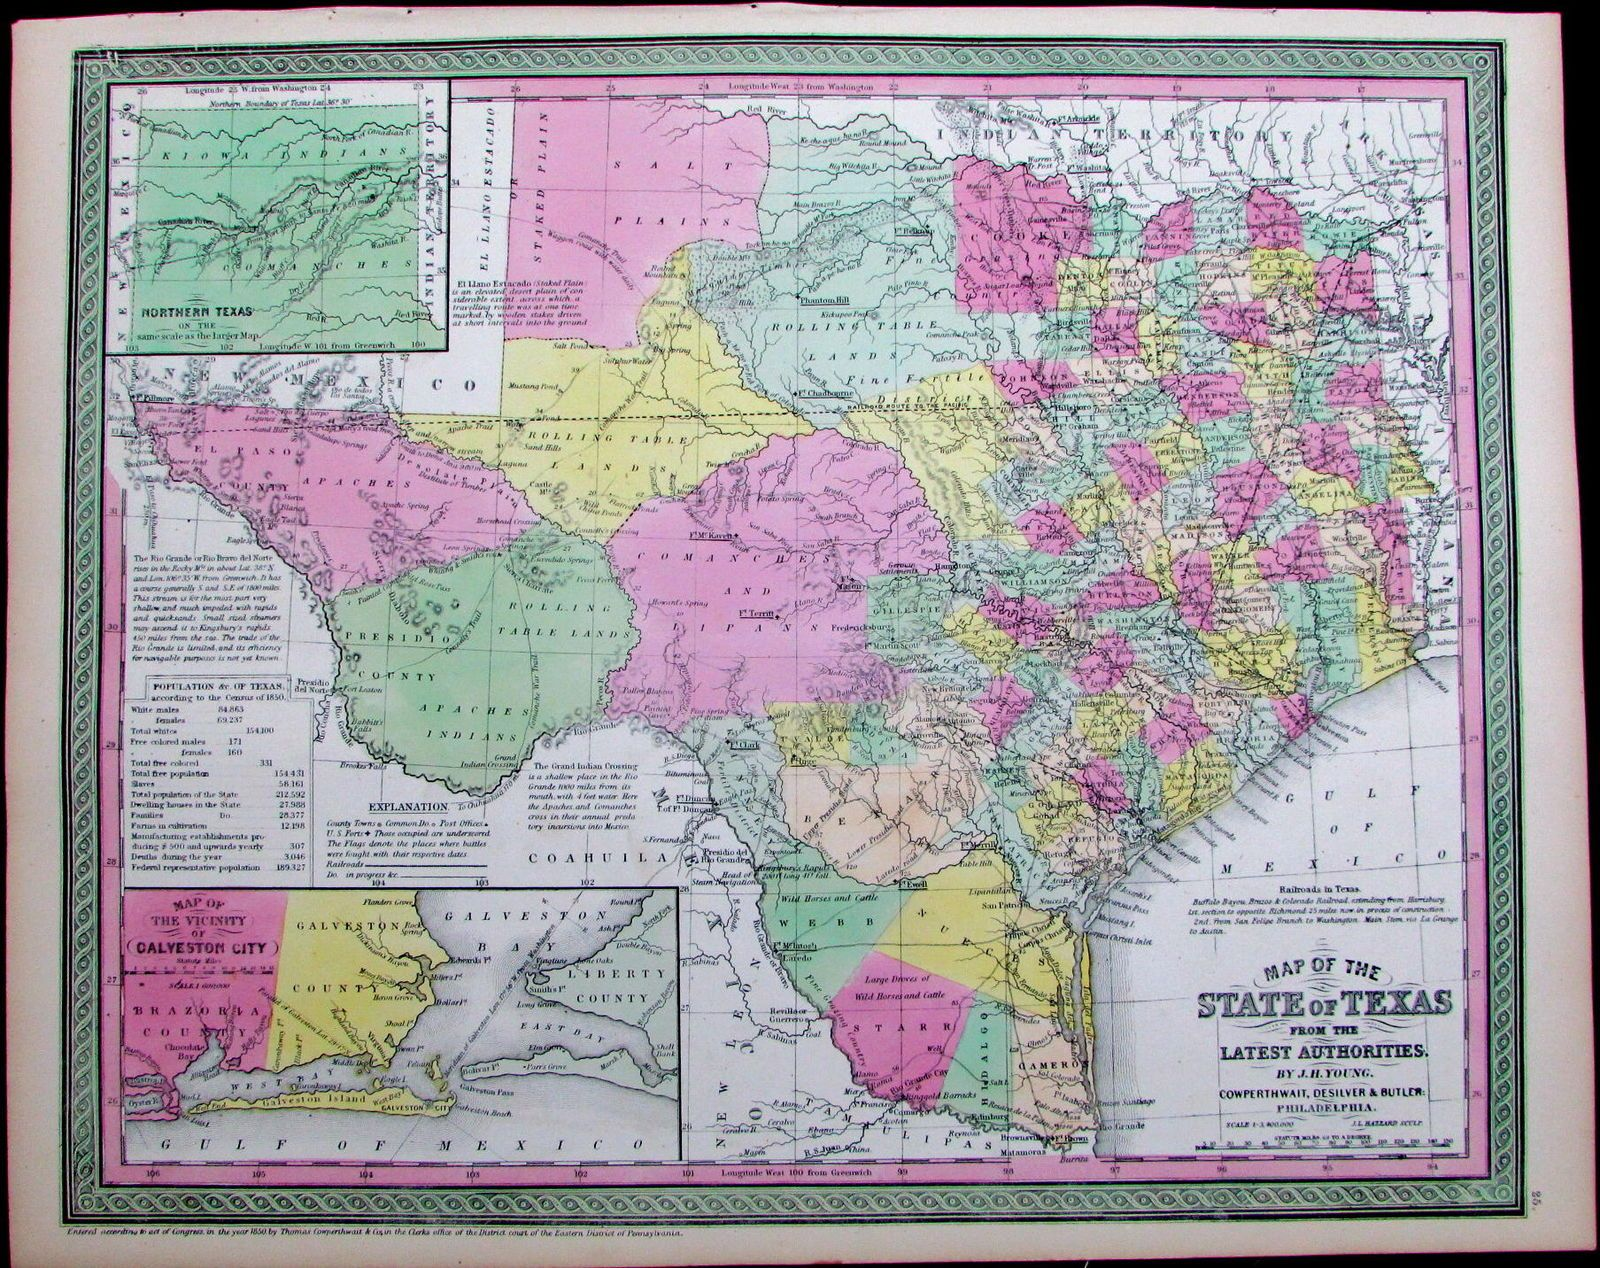 Map Usa States With Cities%0A Texas state map      Cowperthwait hand color scarce detailed map slaves  trails